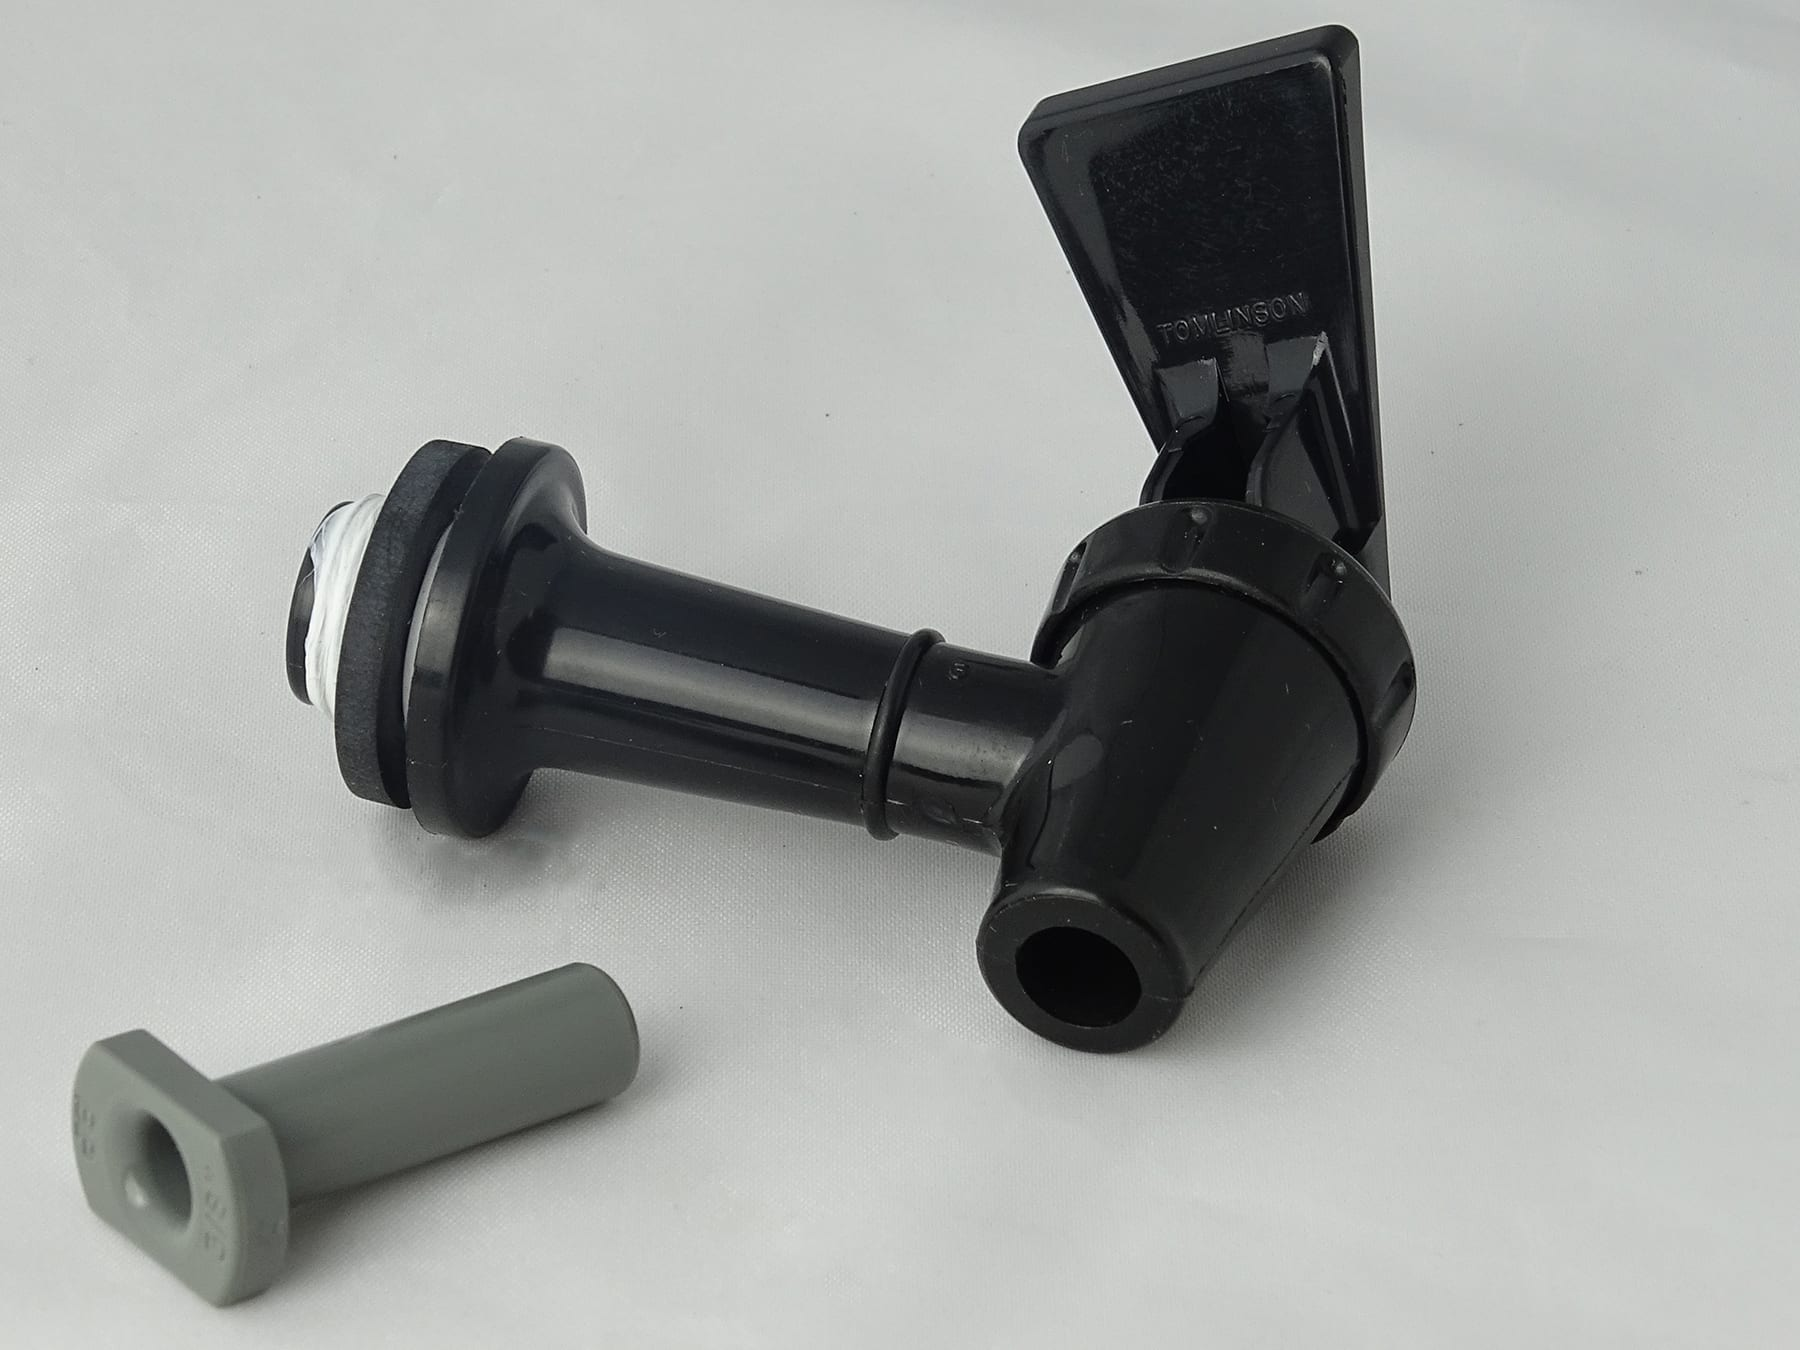 Tomlinson Designer Black Faucet - My Pure Water